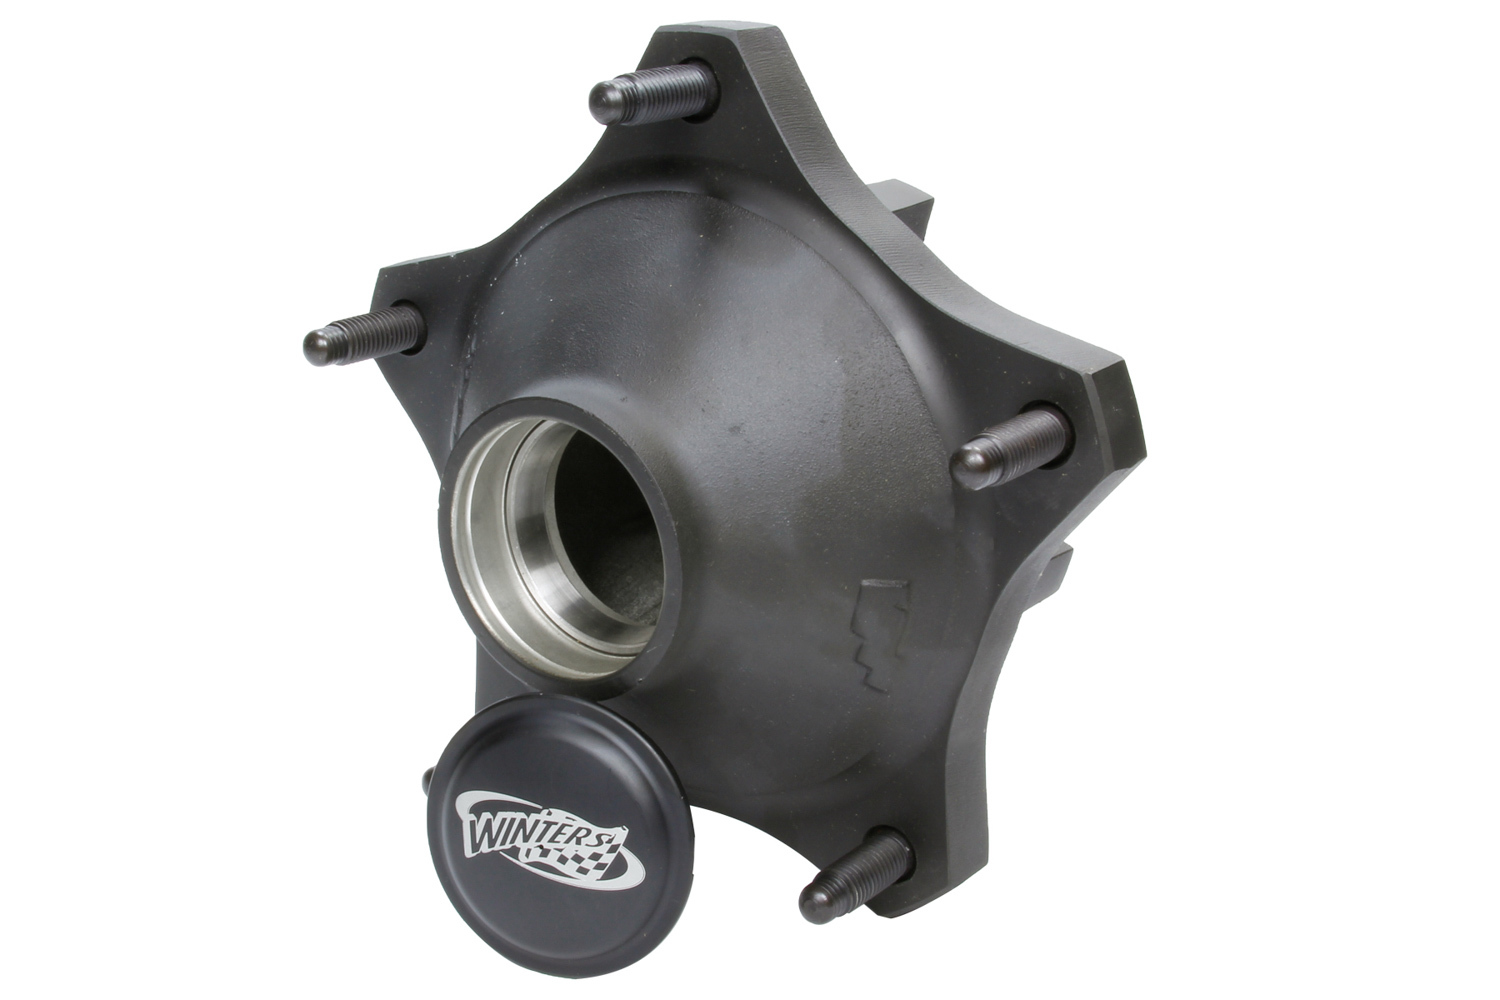 Winters Wide 5 Hub Front Mag. Snap Cap Thermal Coated